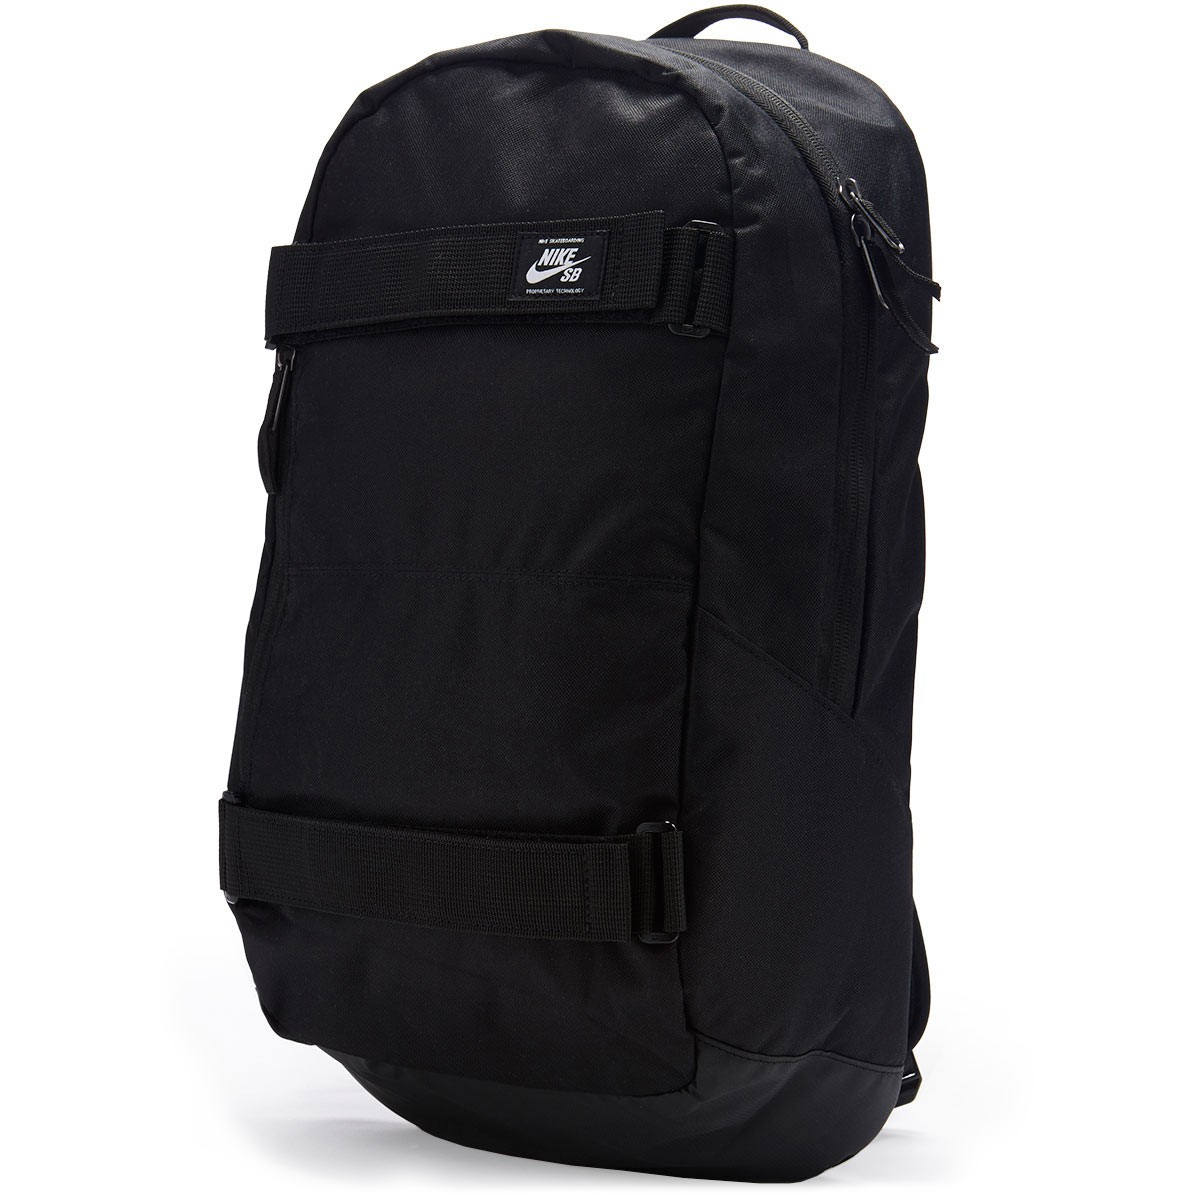 233c59fc846 nike-sb-courthouse-backpack-black-black-white-1 1.1506807002.jpg